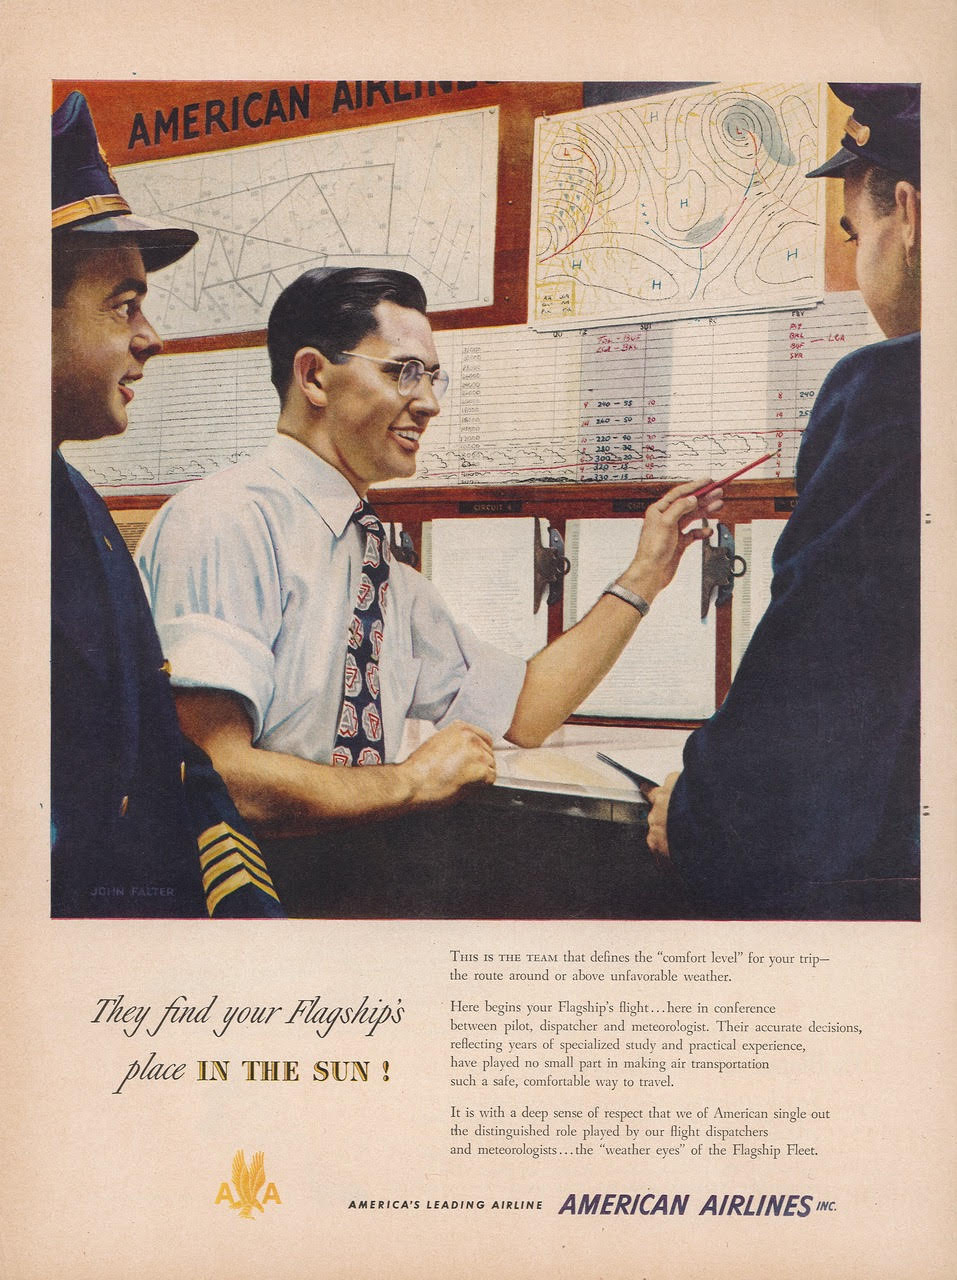 'They Find Your Flagship's Place in the Sun!' Advertisement for American Airlines, probably published in Life Magazine, 1950. From a copy in author's personal collection.